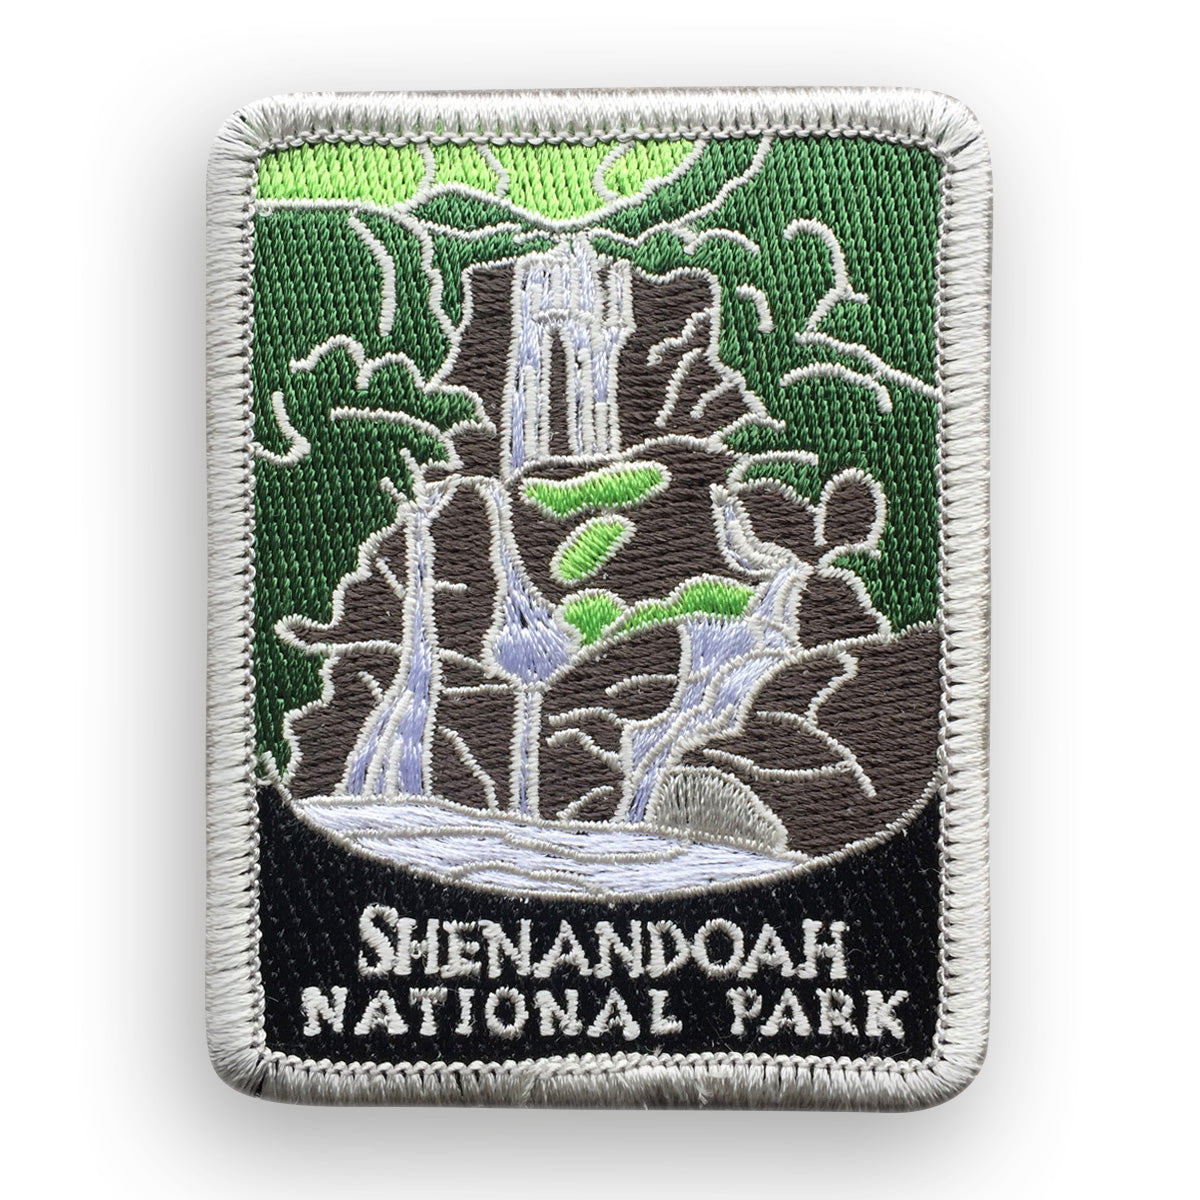 Shenandoah National Park Traveler Patch